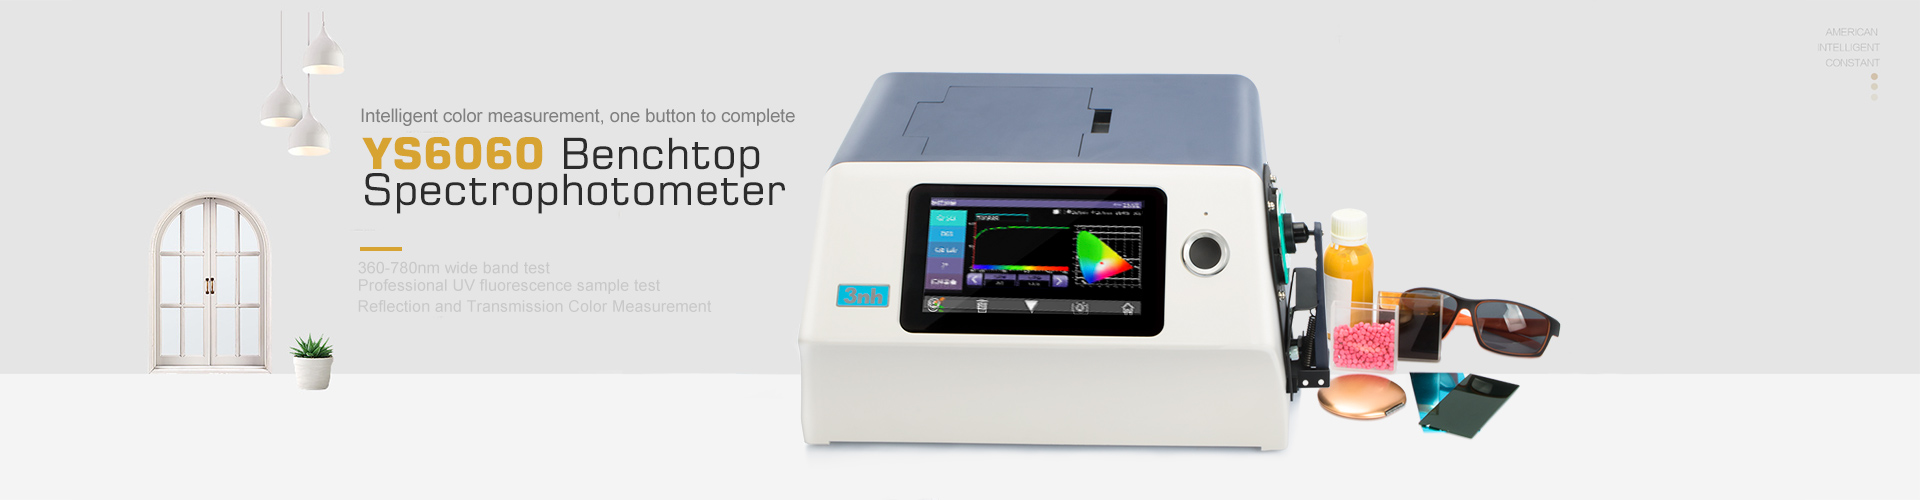 YS6060 Desktop Spectrophotometer